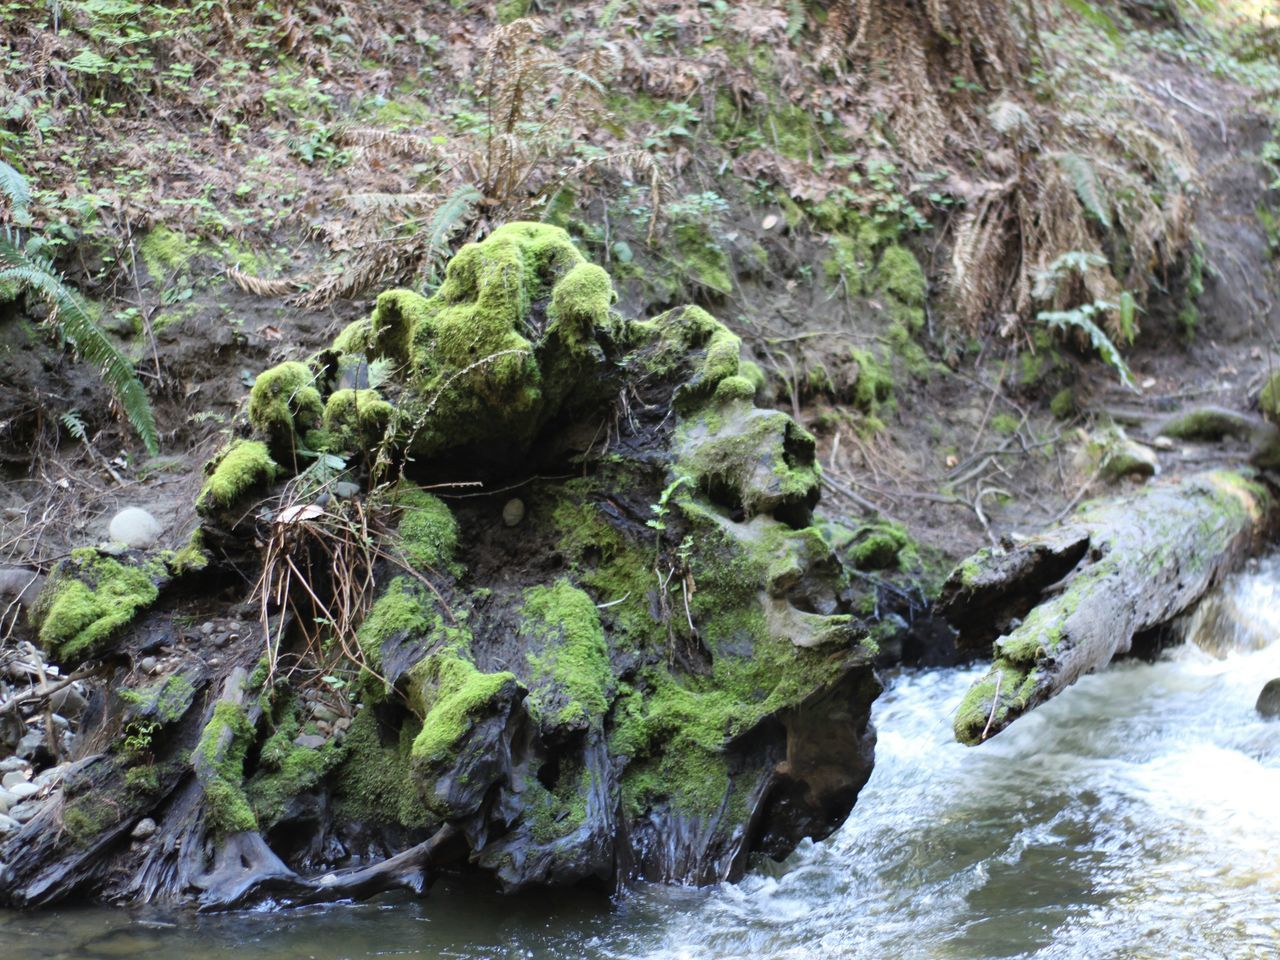 Water Nature Outdoors Growth No People Day Tree Green Color Tree Stump Stump Mossy Tree Moss Vacations Scenics California Explore Nature Dead Tree Beauty In Nature EyeEm Best Shots Northern California Lush Alive  Environment Redwoods Evergreen